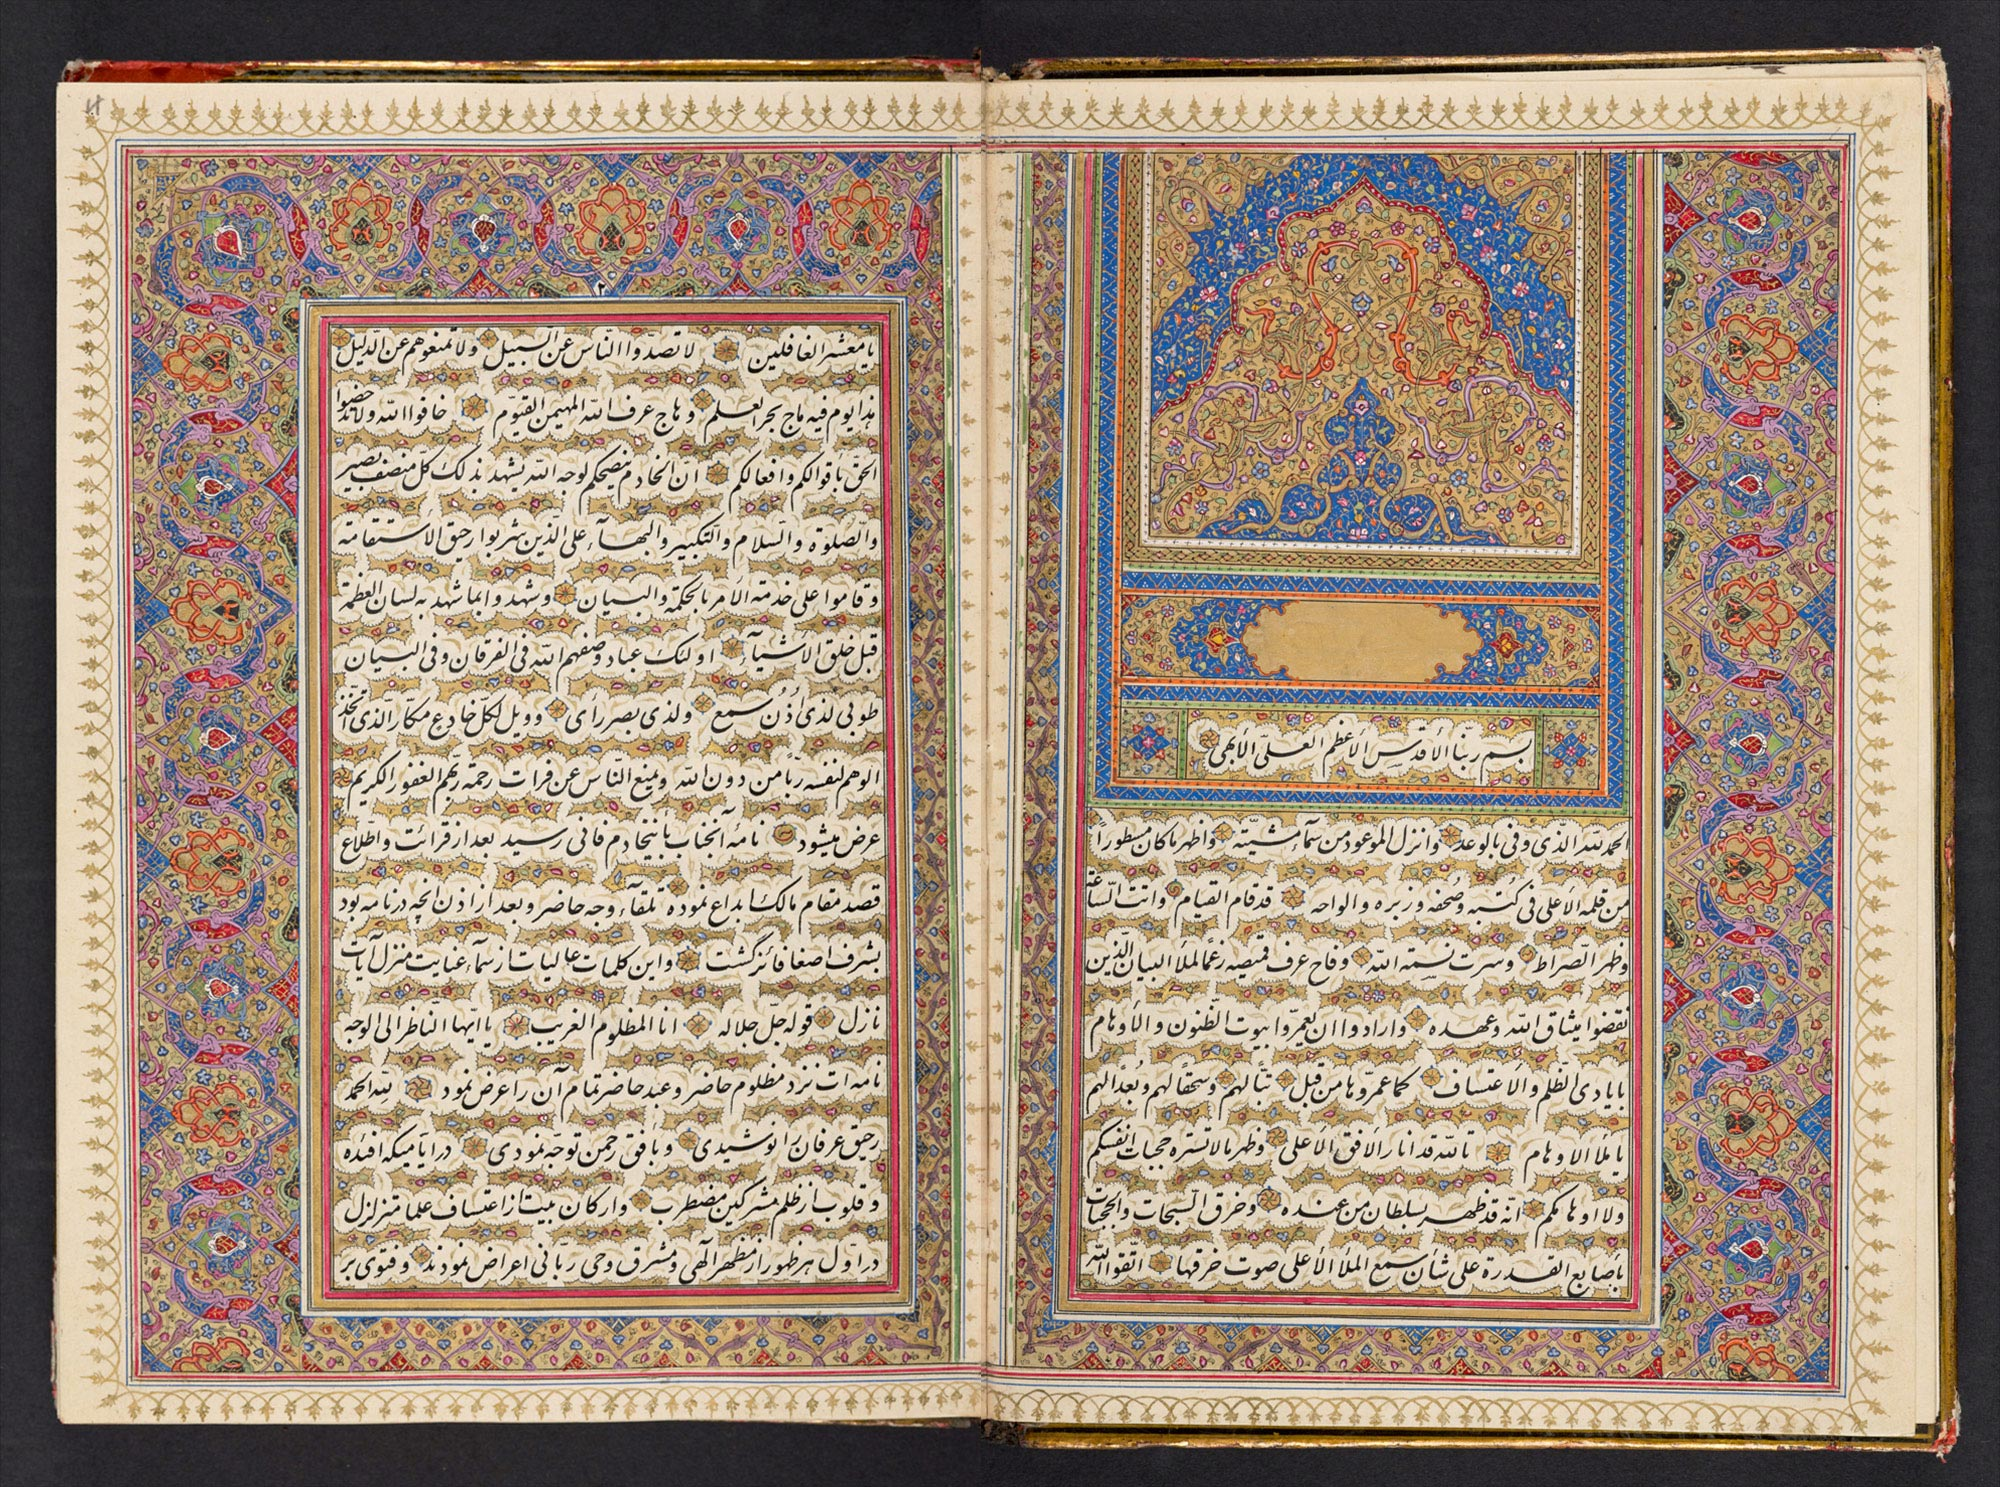 Double page spread of folios from a collection of Baha'i Tablets. Pages are finely illuminated.